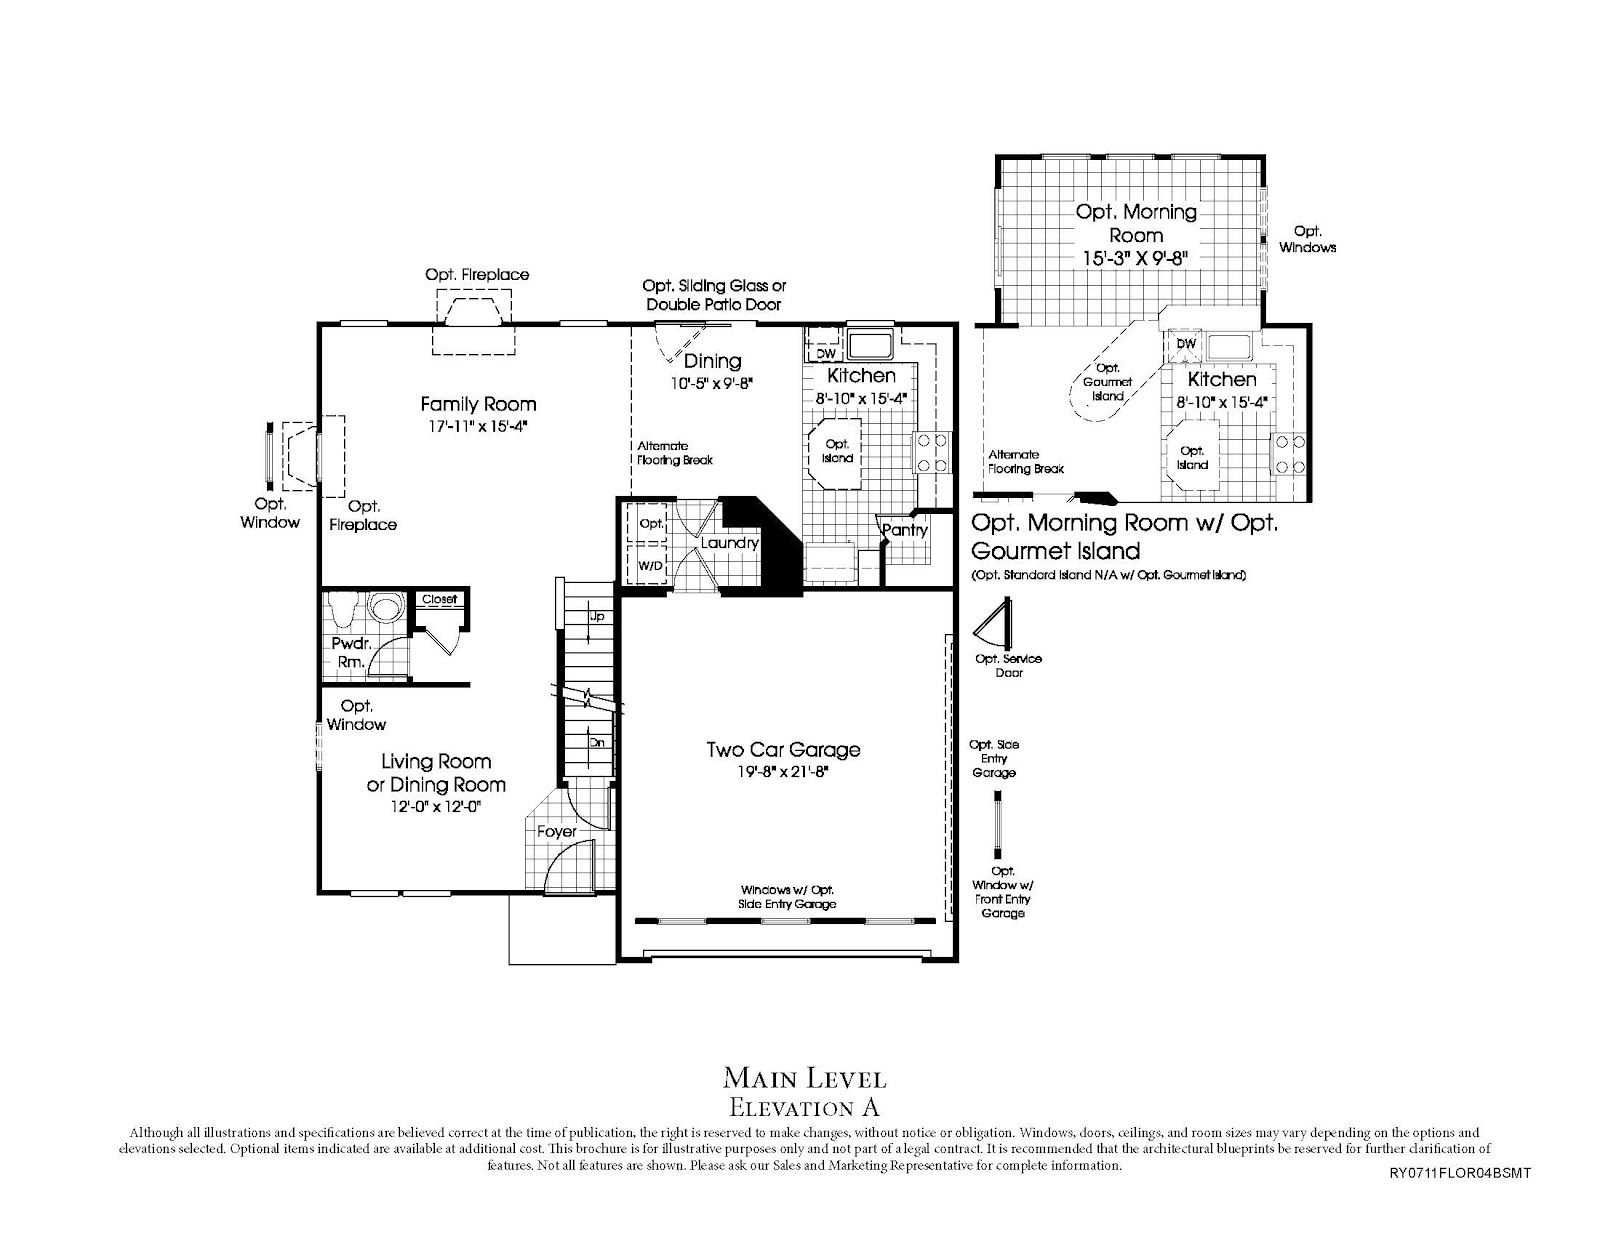 New Ryan Home Plans Ranch   Free Online Image House Plans    Ryan Homes Florence Floor Plan on new ryan home plans ranch